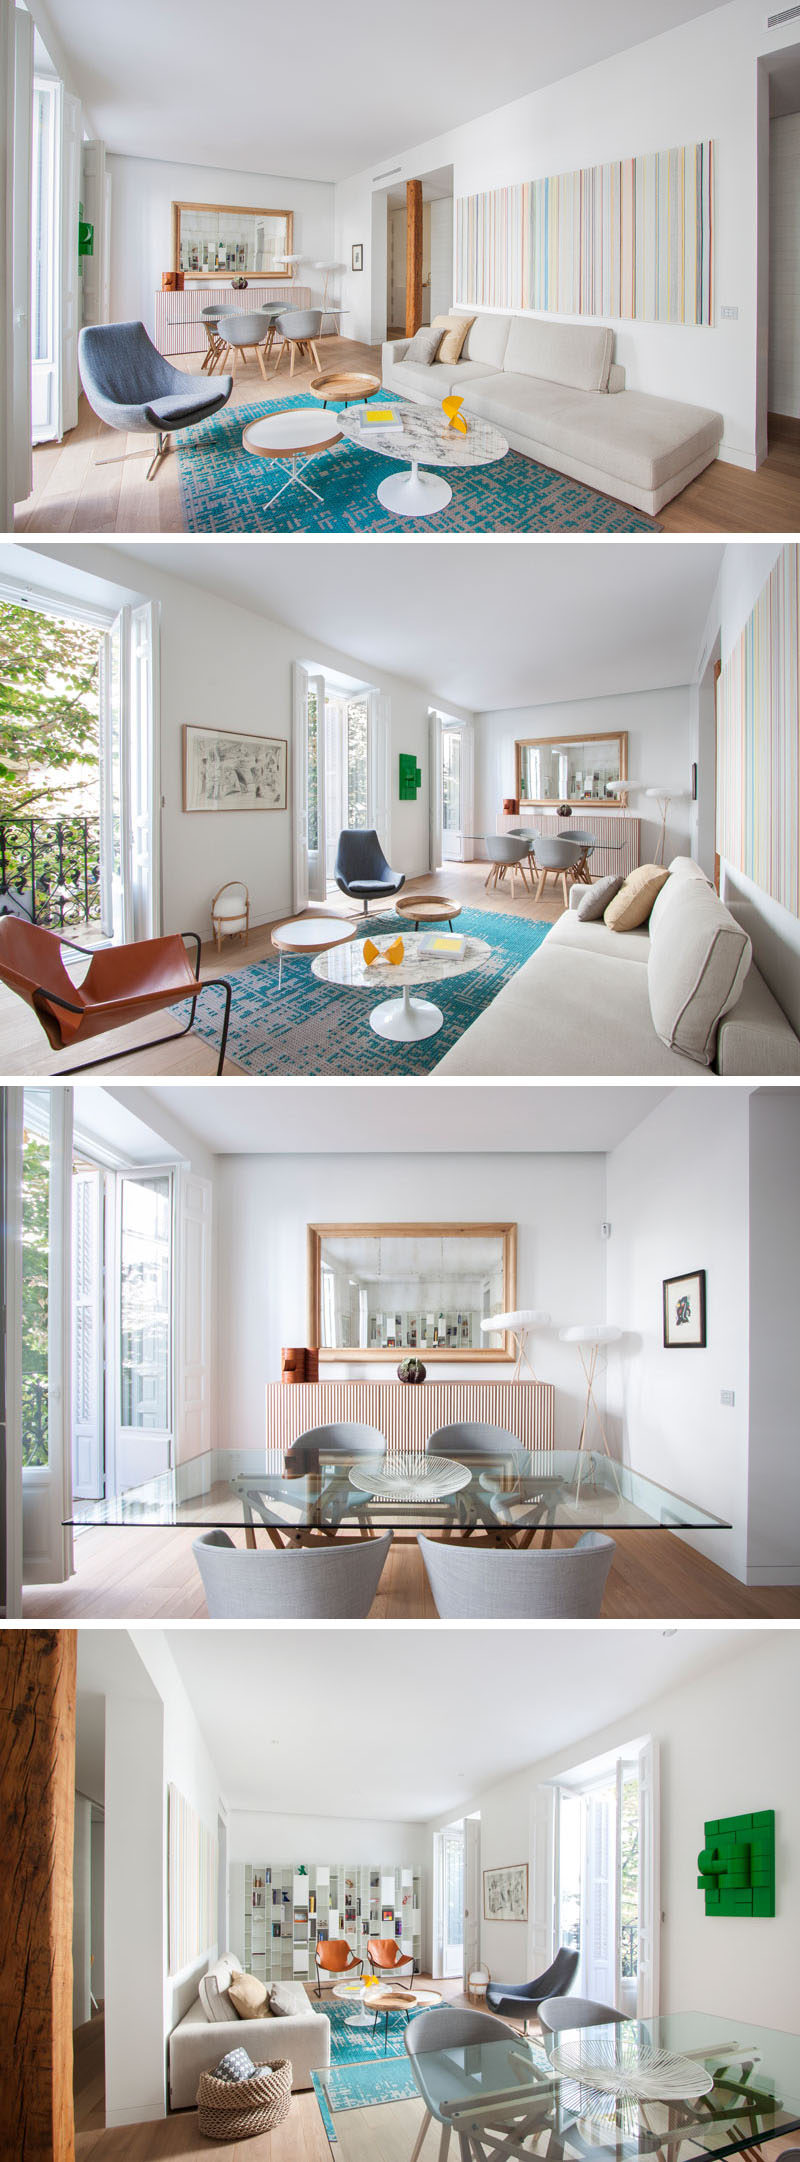 In this modern apartment, the living room and dining room share the open floor plan, while a large mirror on the wall makes the room appear larger than it is. Pops of color in the decor, rug and artwork, help to brighten the space. Large windows open up to a Juliet balcony and provide plenty of natural light.